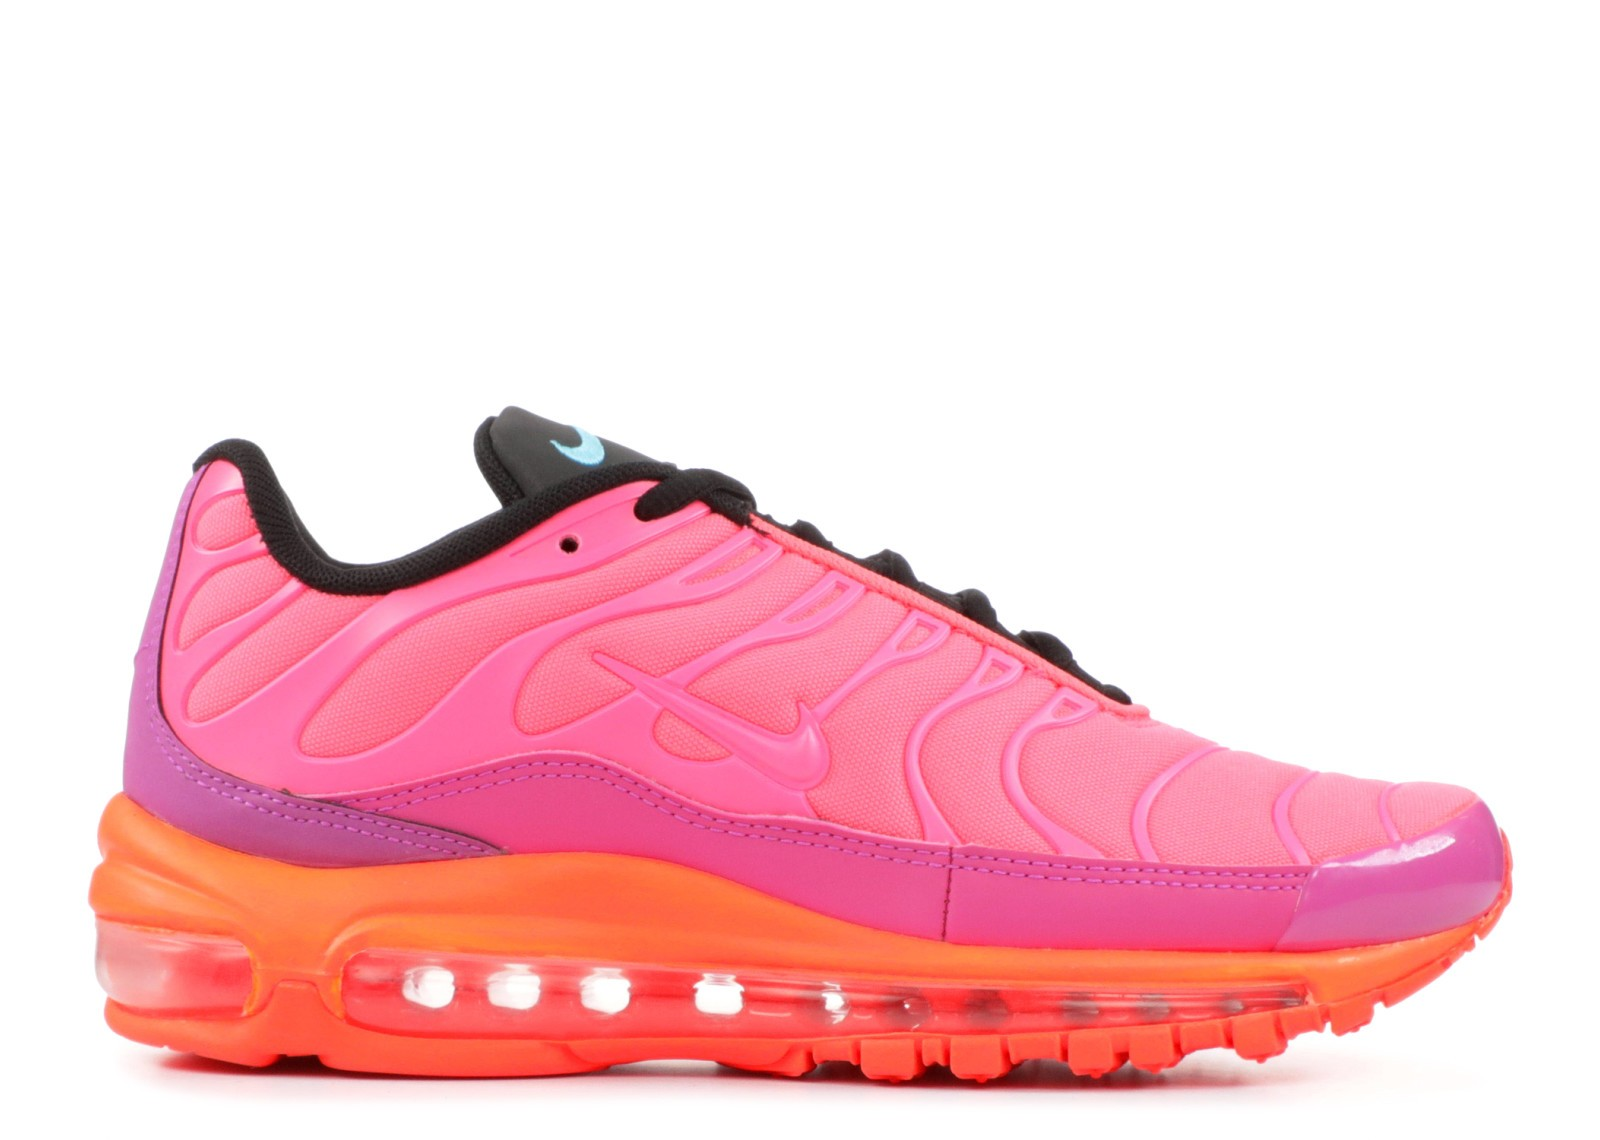 Nike Air Max 97 Plus Racer Rosas AH8144 600